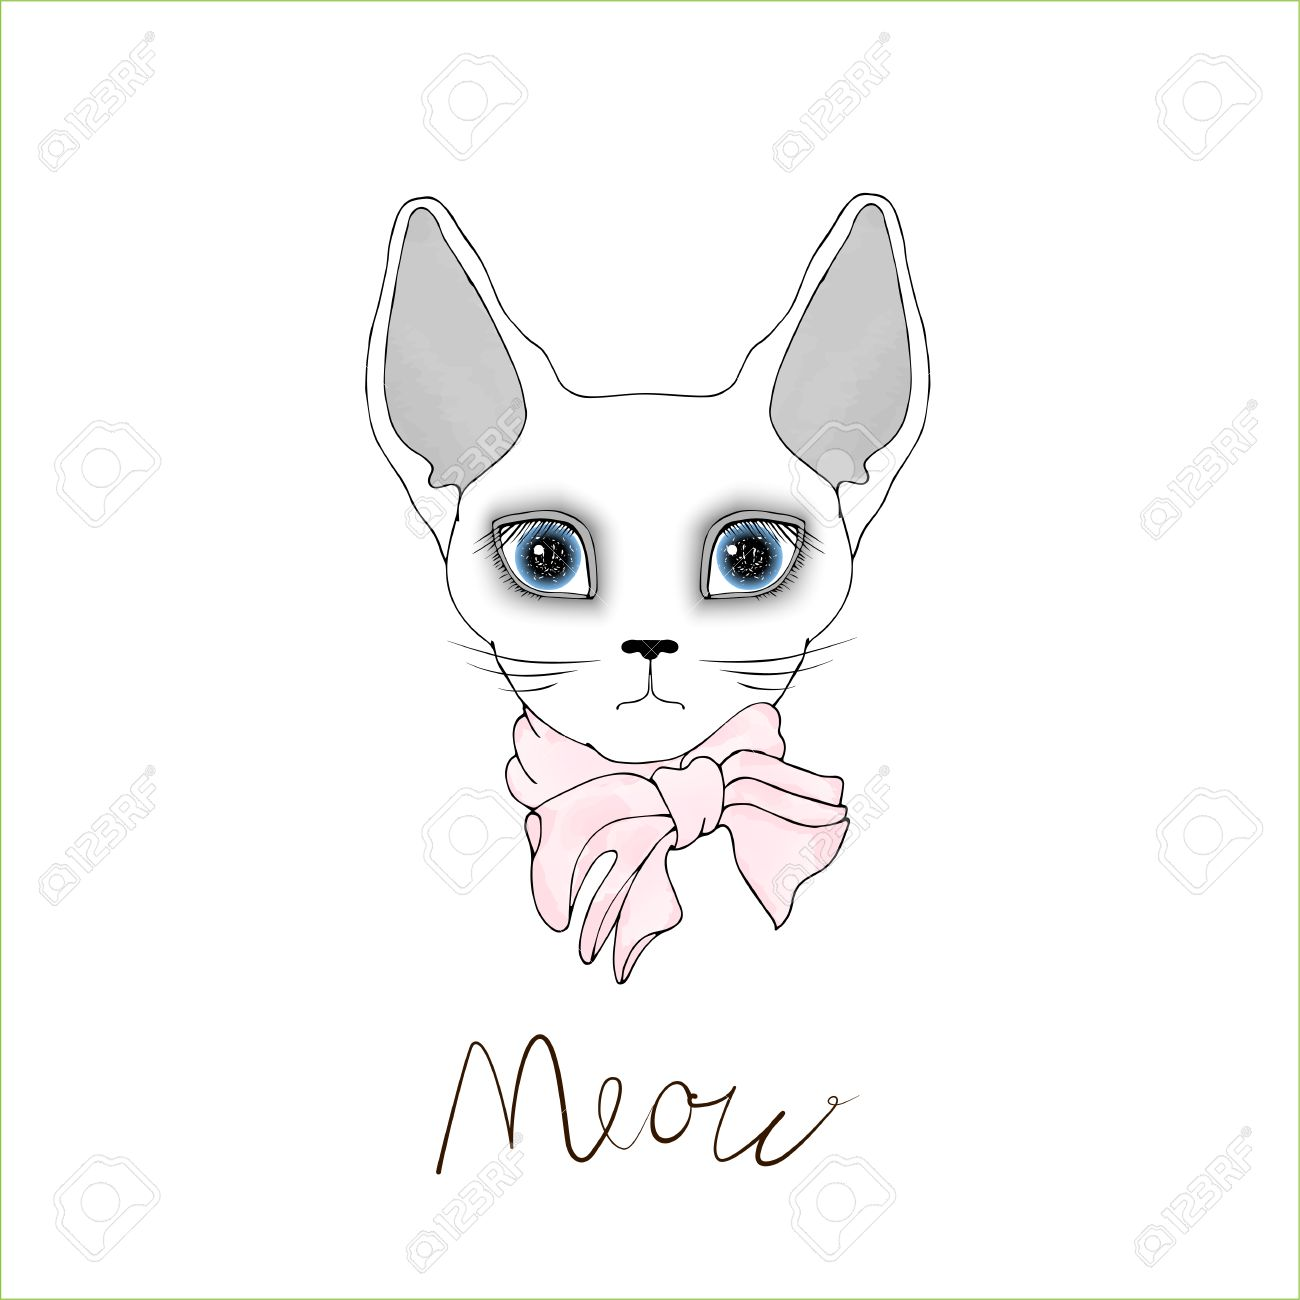 1300x1300 Egyptian Bald Cat With Blue Eyes On A White Background. White